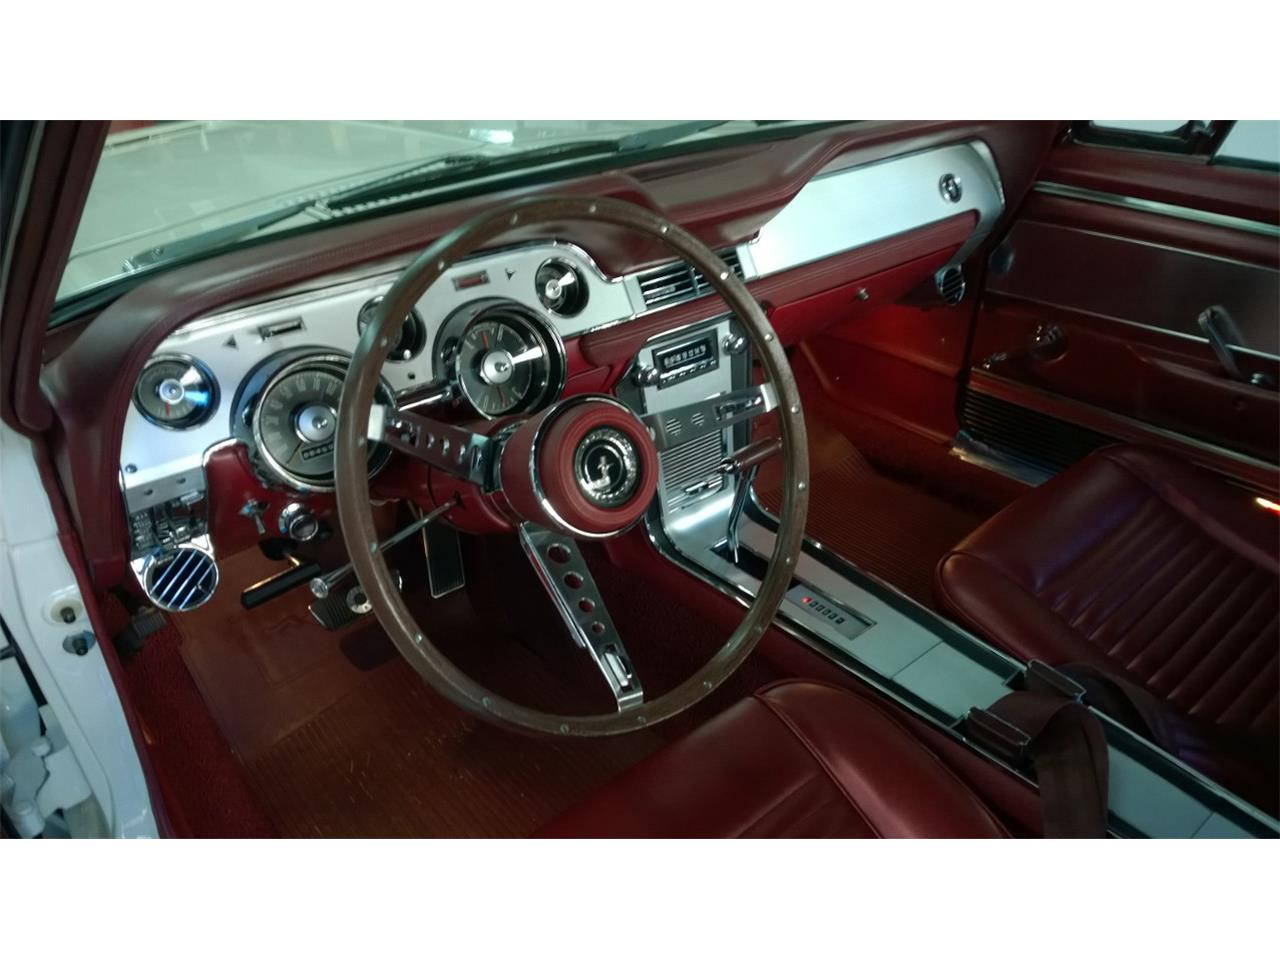 Large Picture of Classic '67 Mustang GT located in Brisbane QLD - $120,000.00 Offered by a Private Seller - QADD